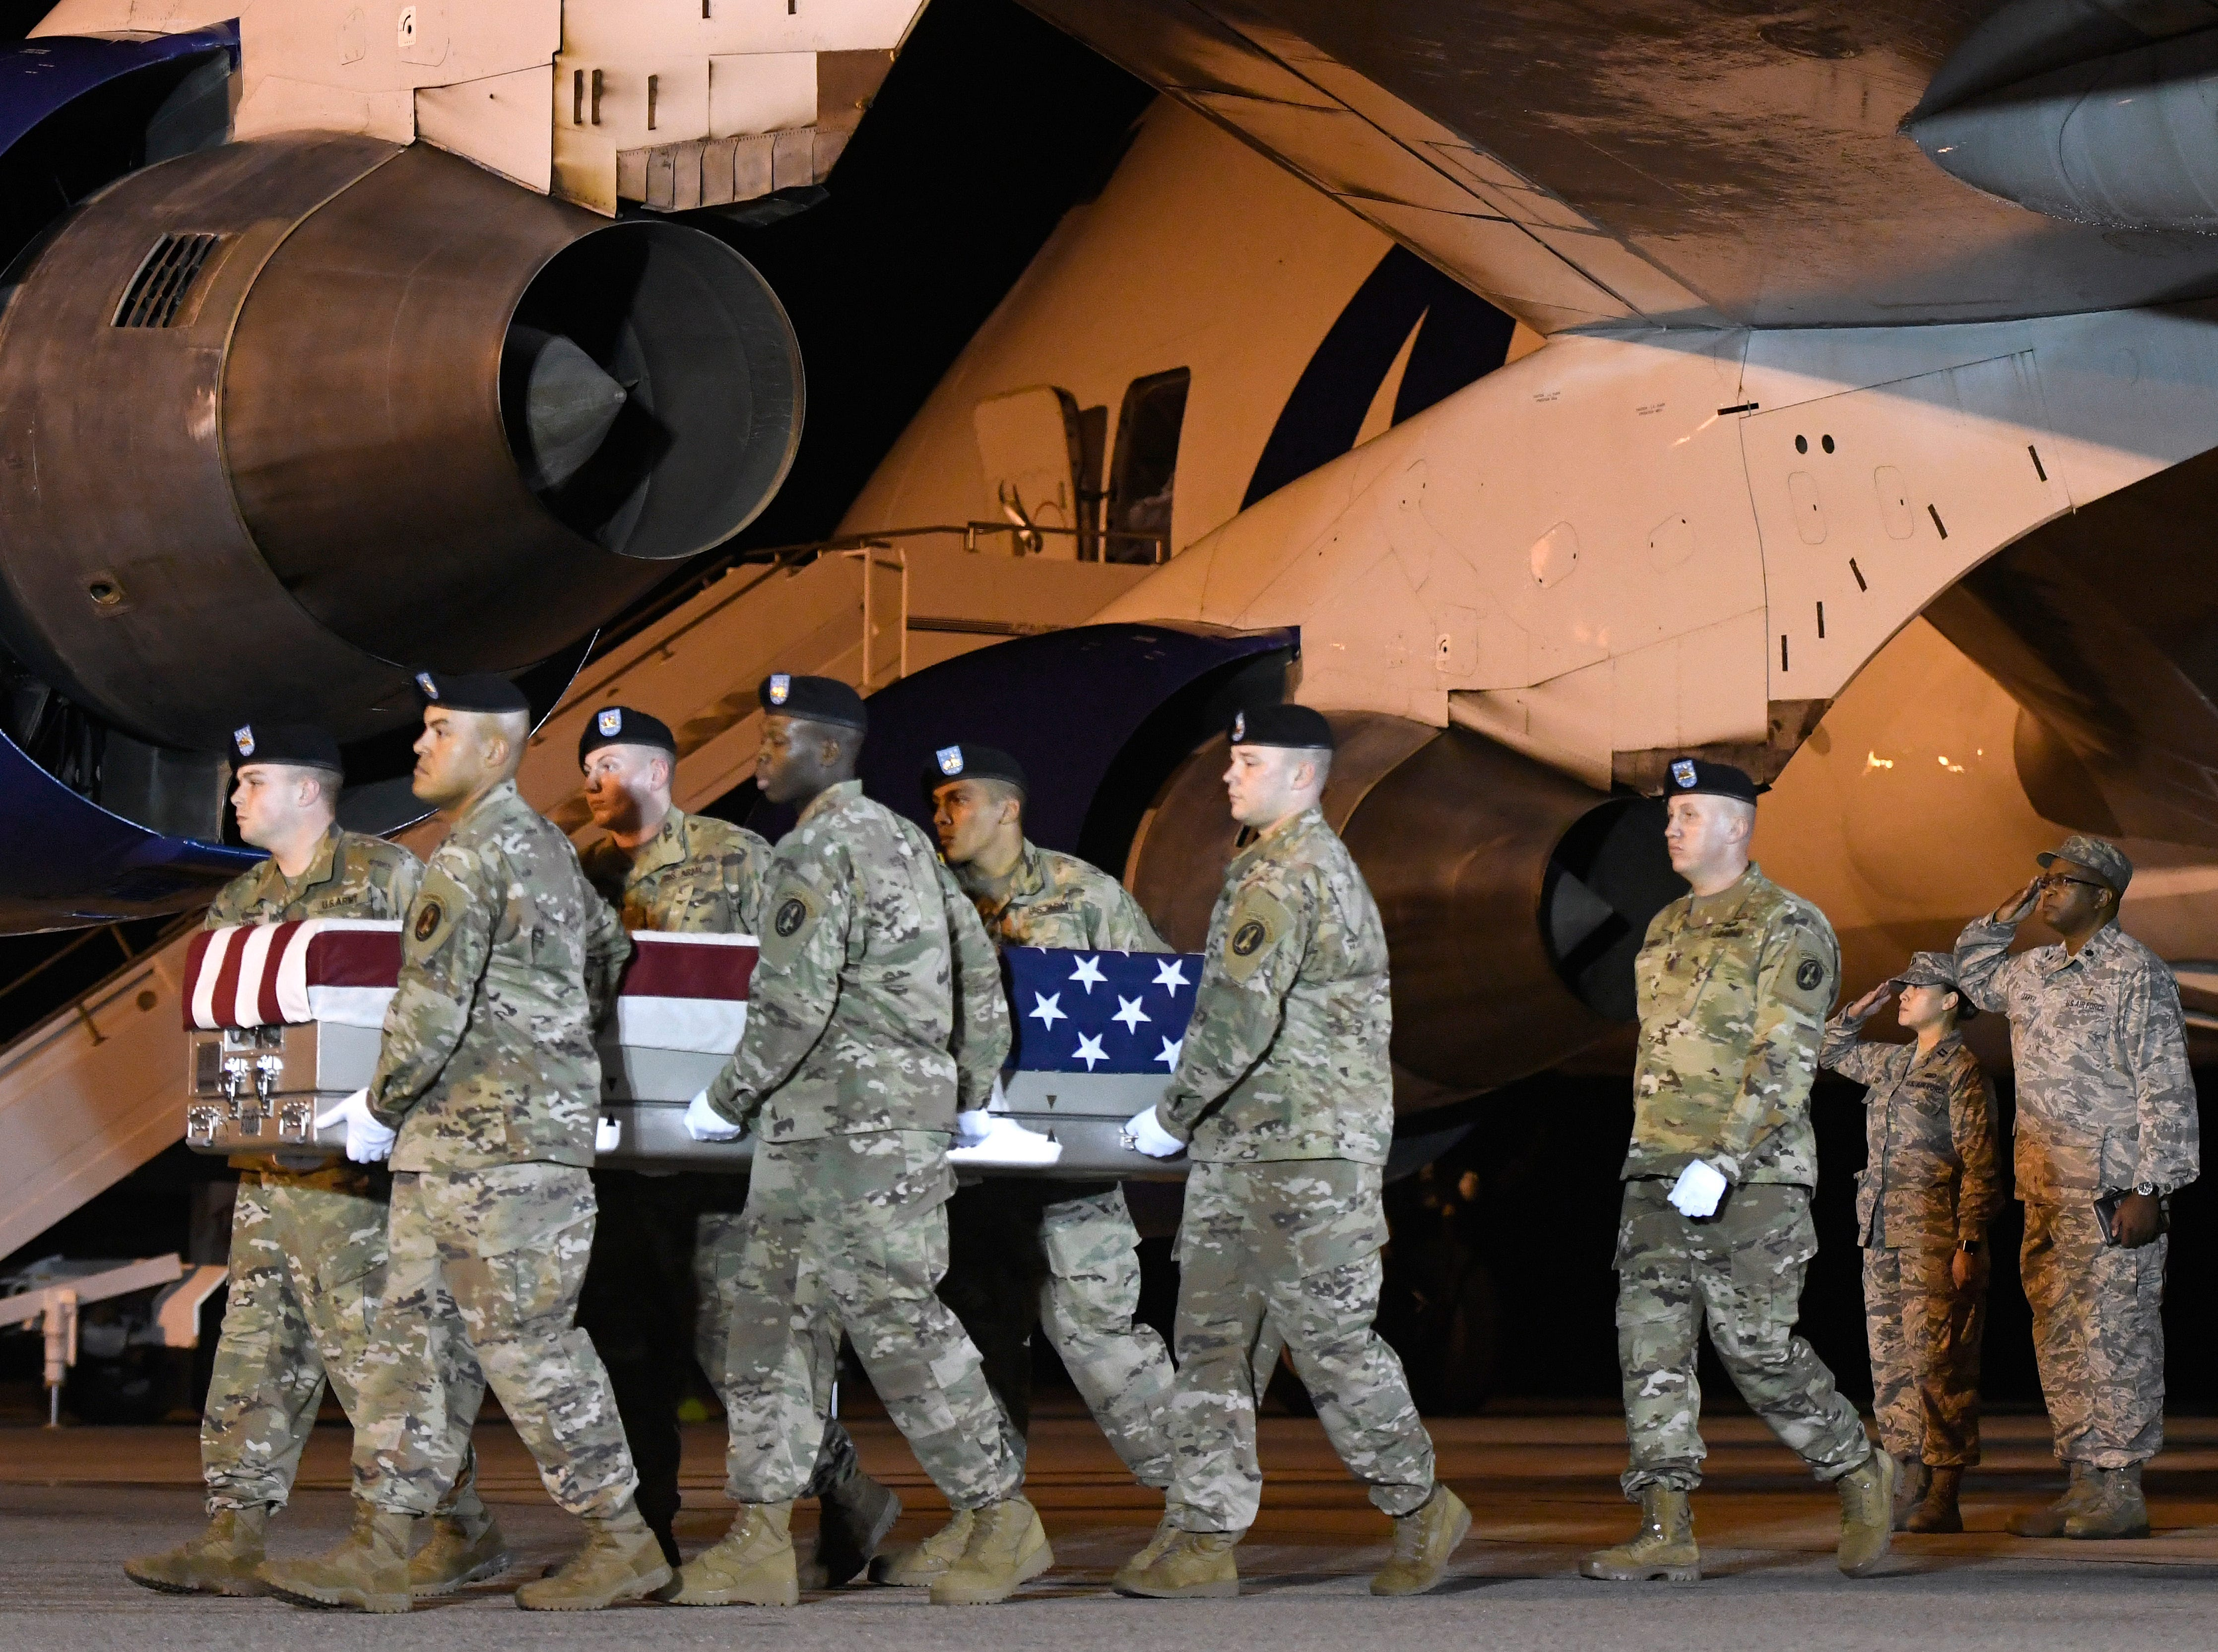 An Army carry team moves a transfer case containing the remains of Sgt. James A. Slape at Dover Air Force Base, Del., on Saturday, Oct. 6, 2018. According to the Department of Defense, Slape, 23, of Morehead City, N.C., died Oct. 4, 2018 in Helmand province, Afghanistan, of injuries sustained from an improvised explosive device.